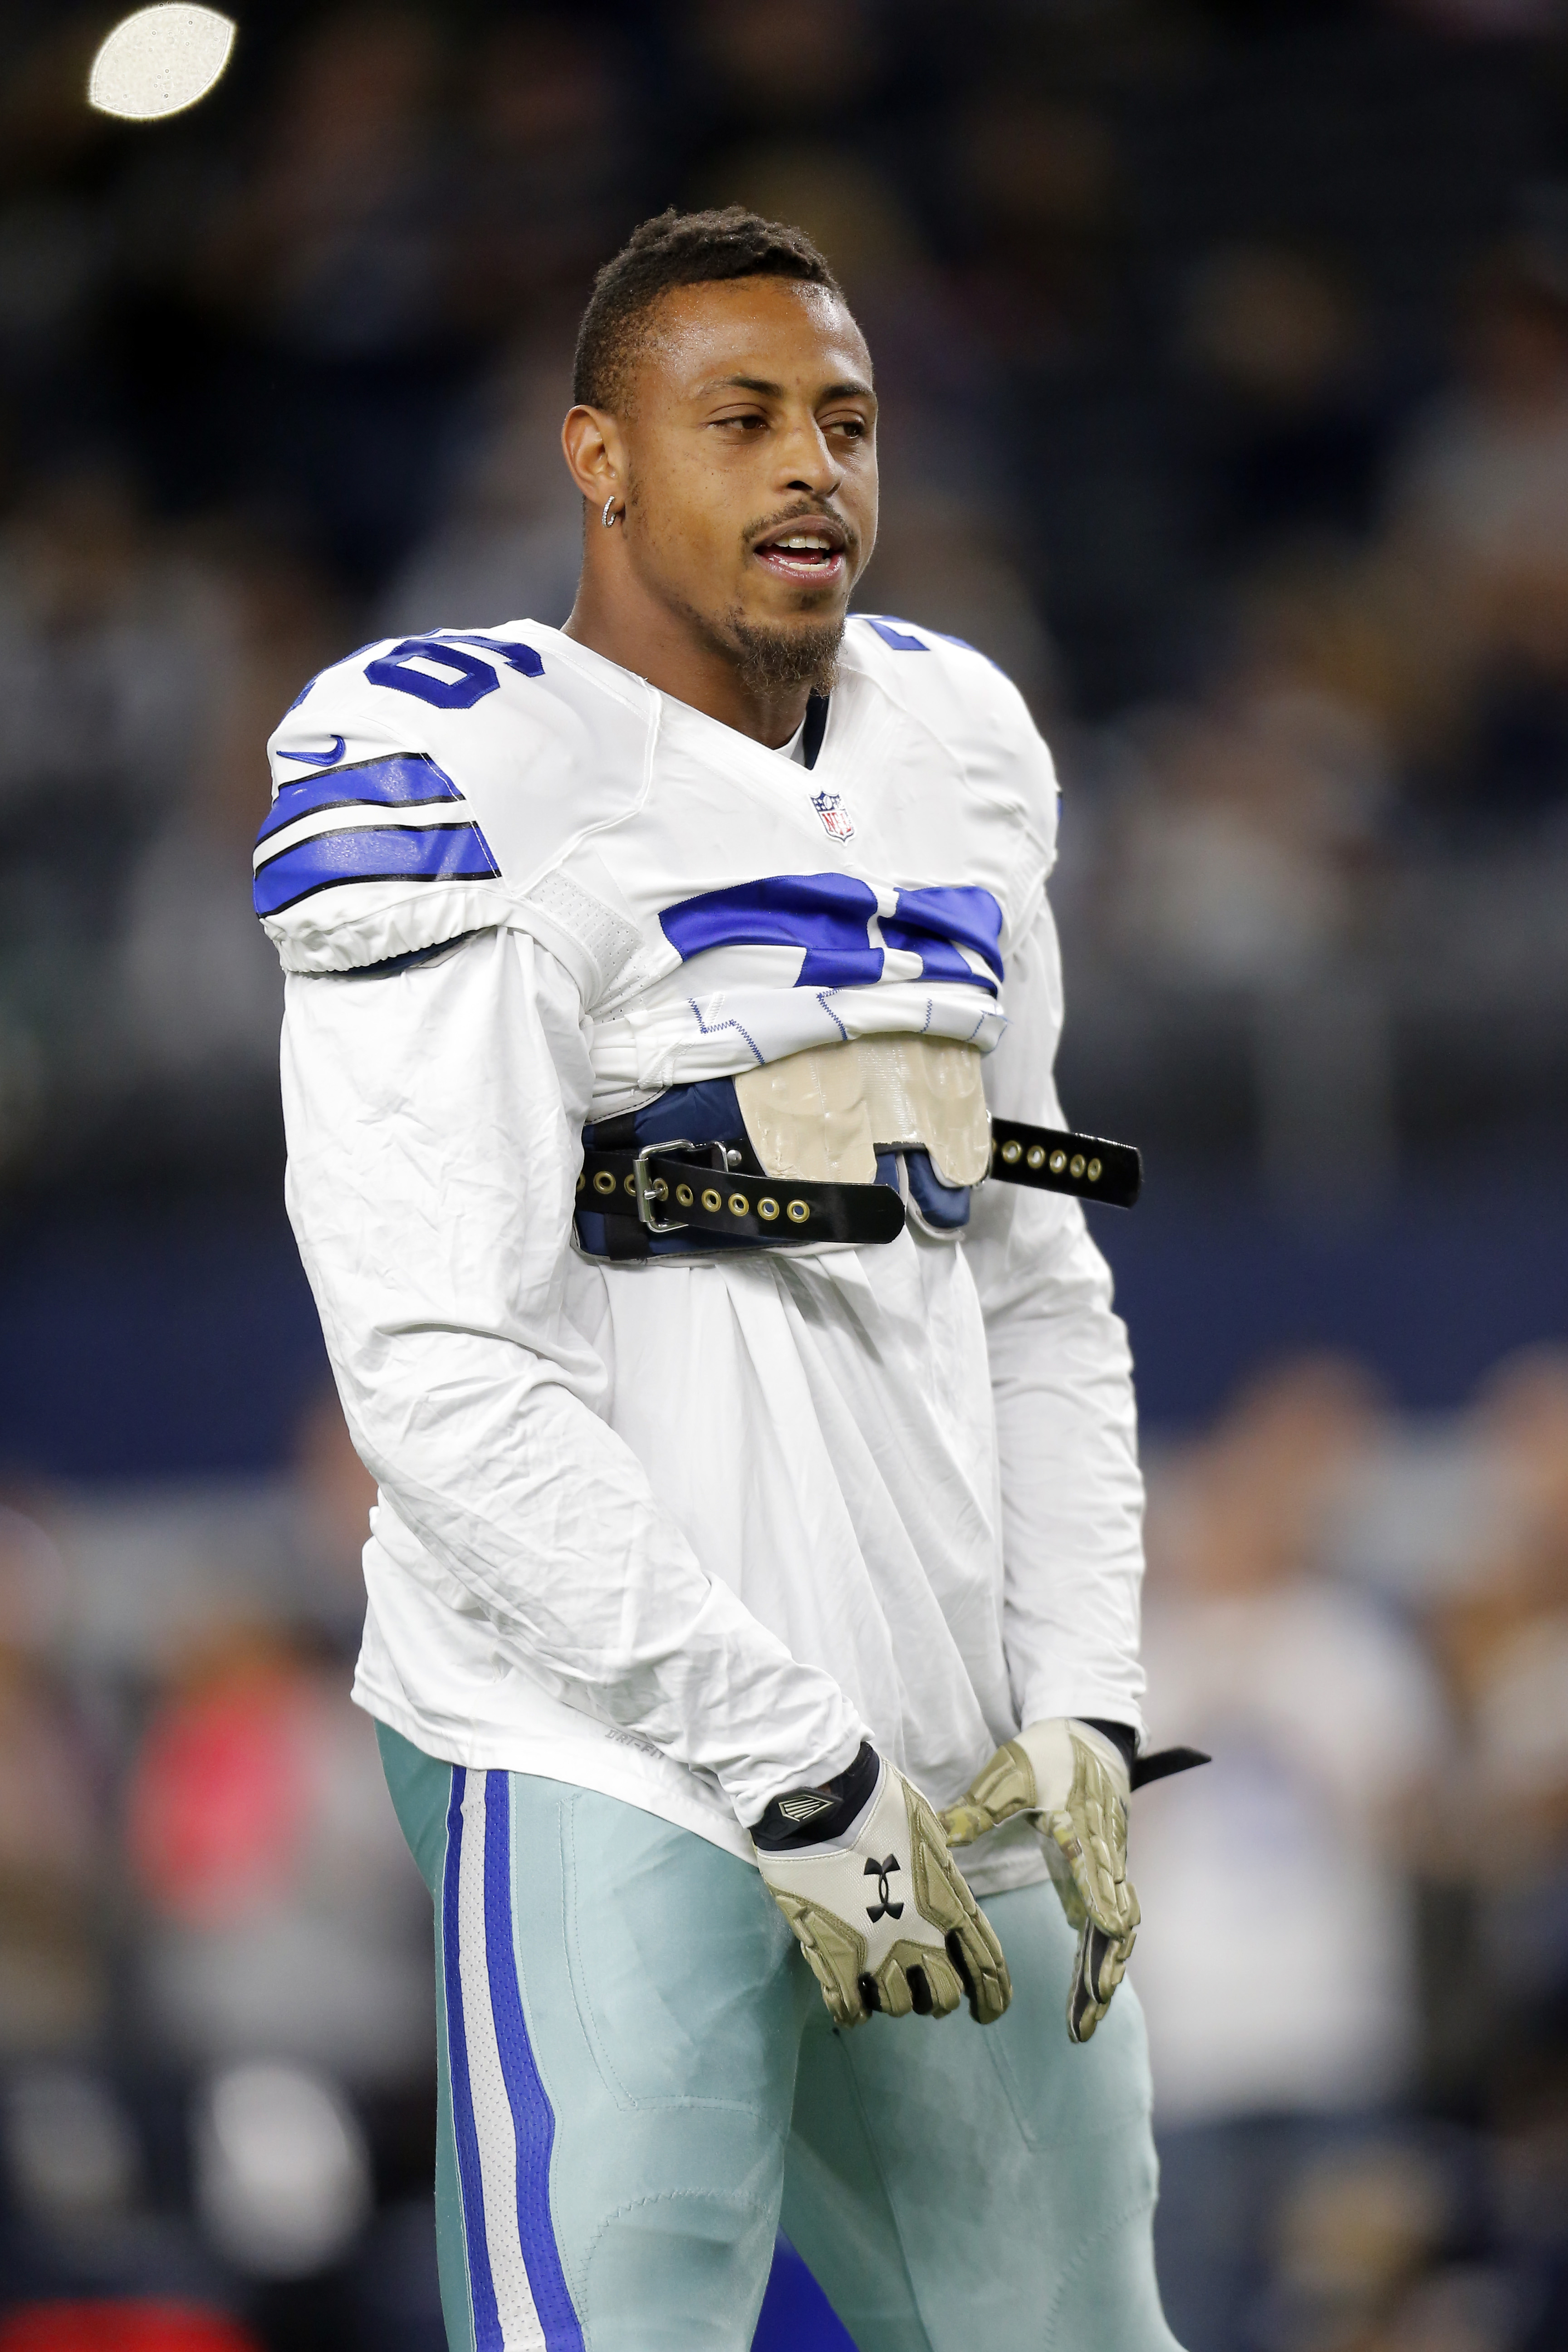 Dallas Cowboys' Greg Hardy (76) stands not he field as he warms up before an NFL football game agaisnt the Philadelphia Eagles on Sunday, Nov. 8, 2015, in Arlington, Texas. (AP Photo/Brandon Wade)